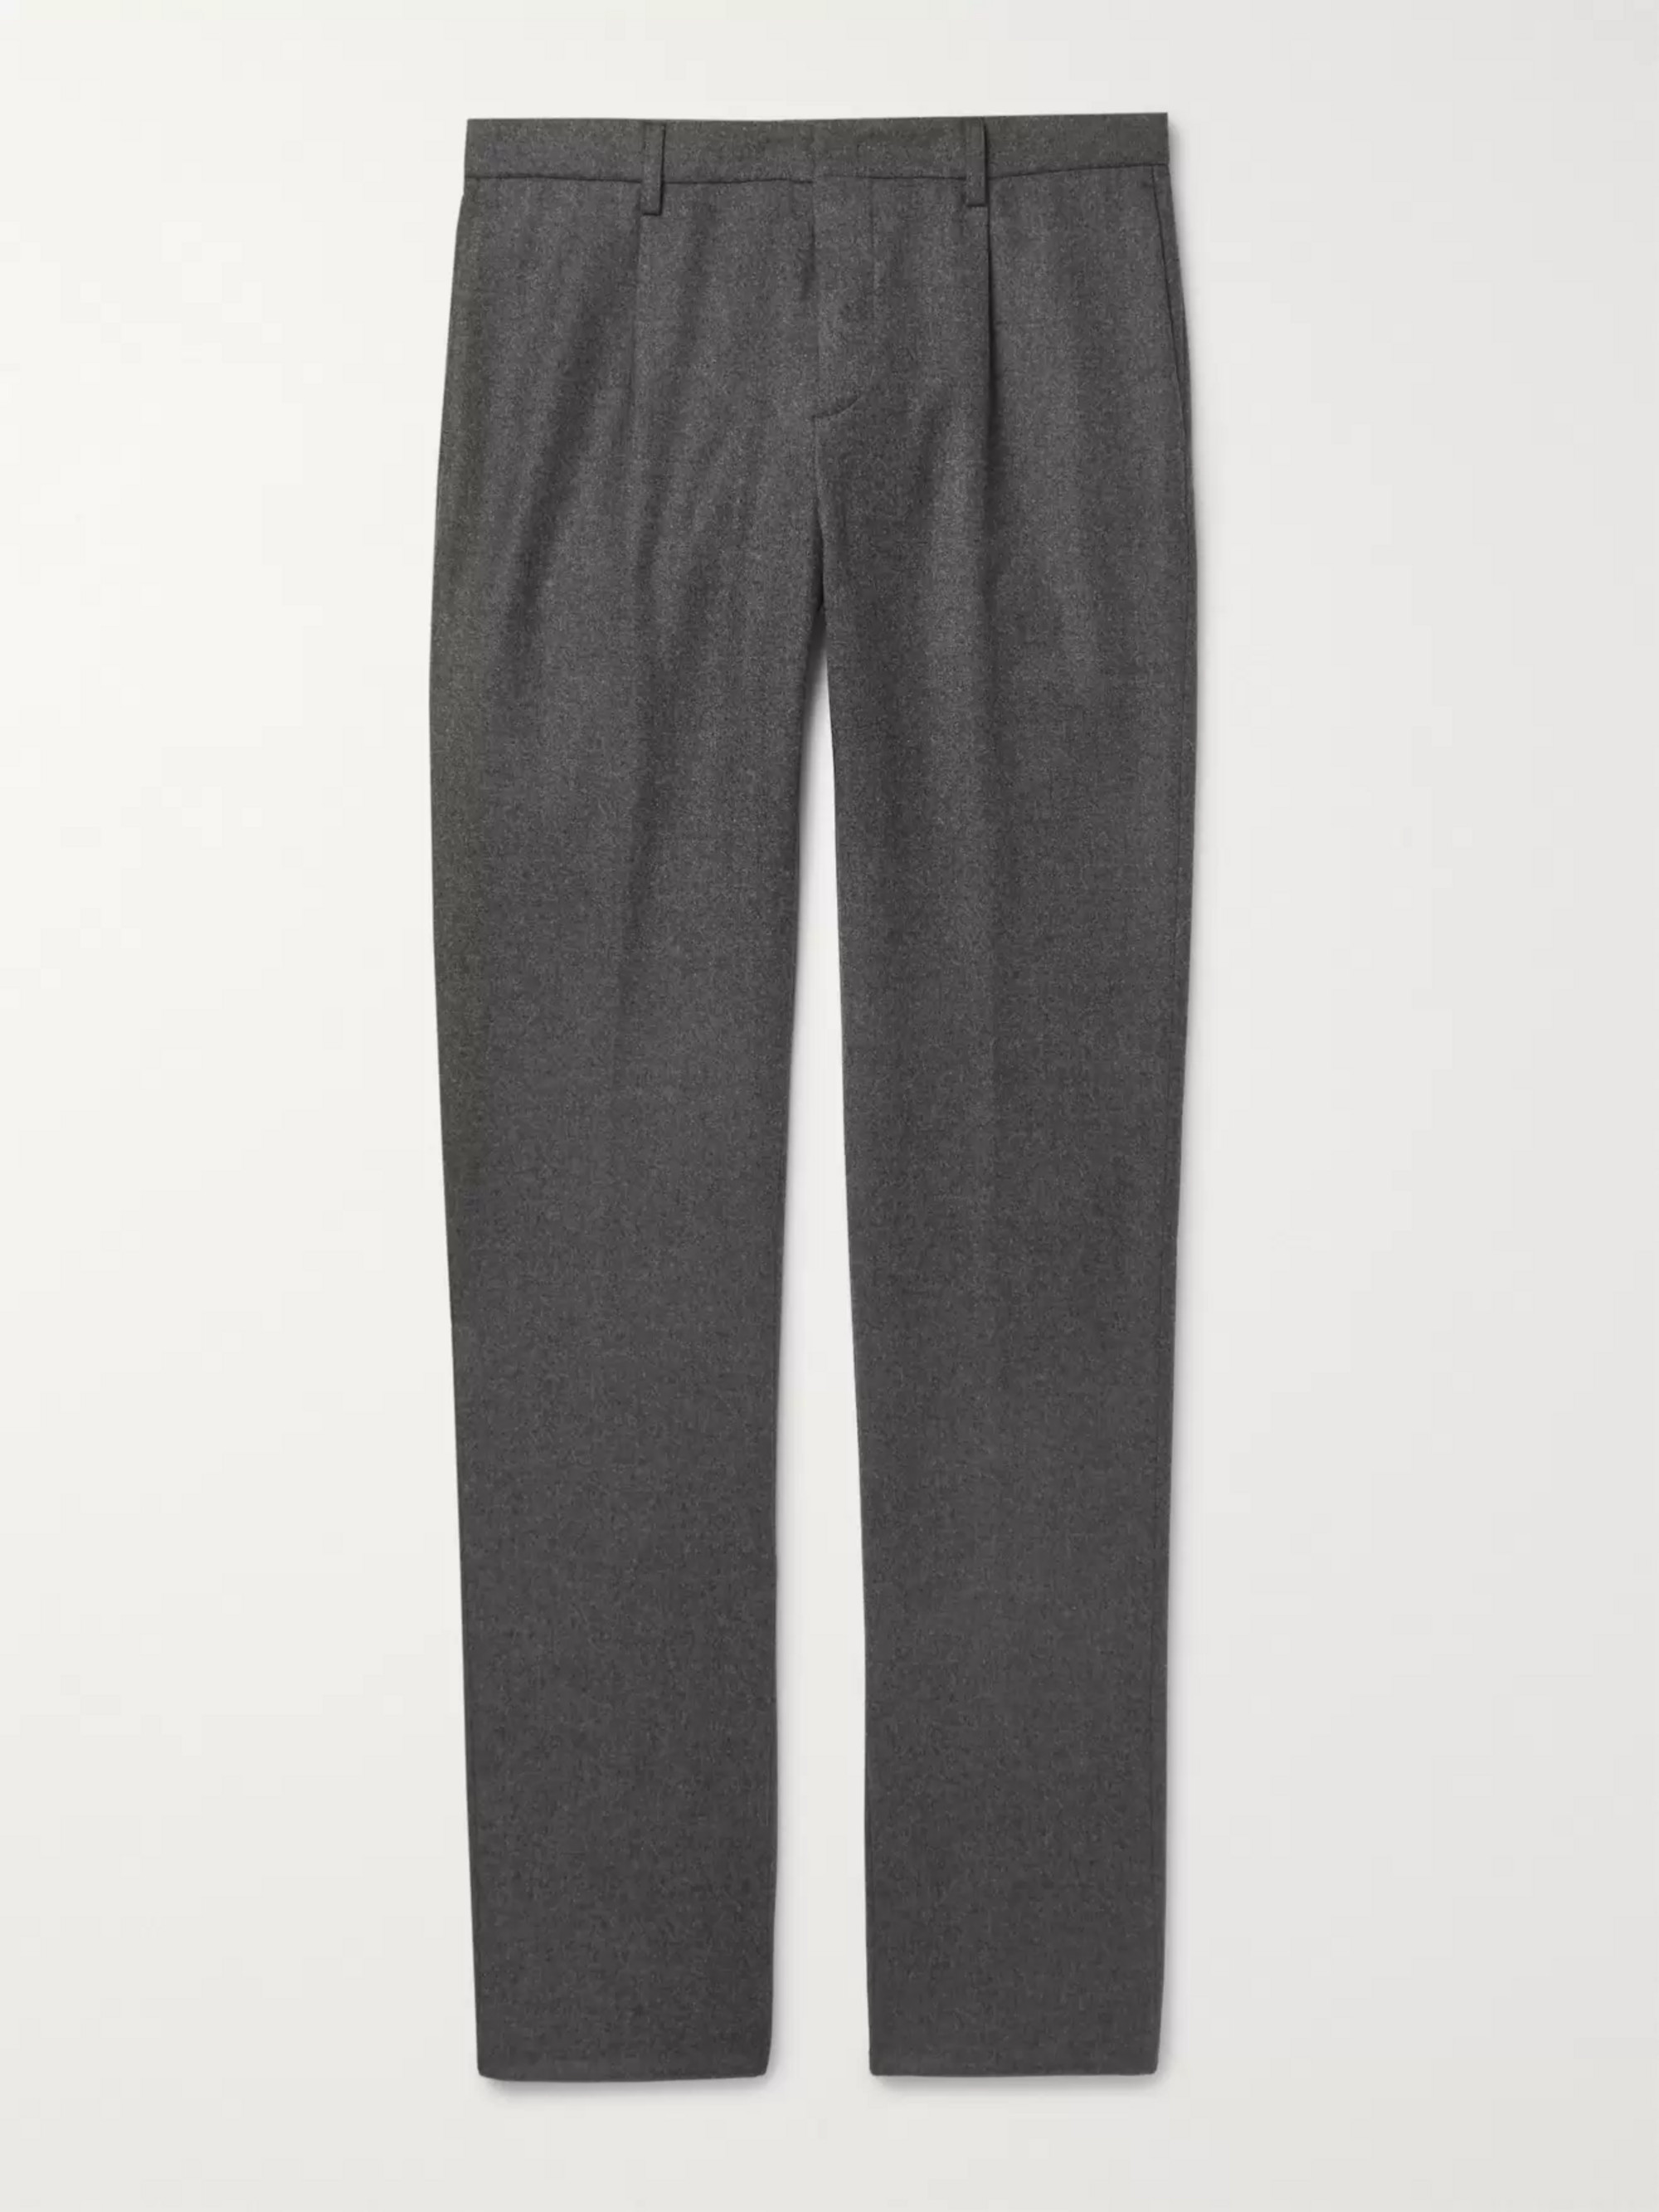 Loro Piana Slim-Fit Mélange Wool and Cashmere-Blend Drawstring Trousers